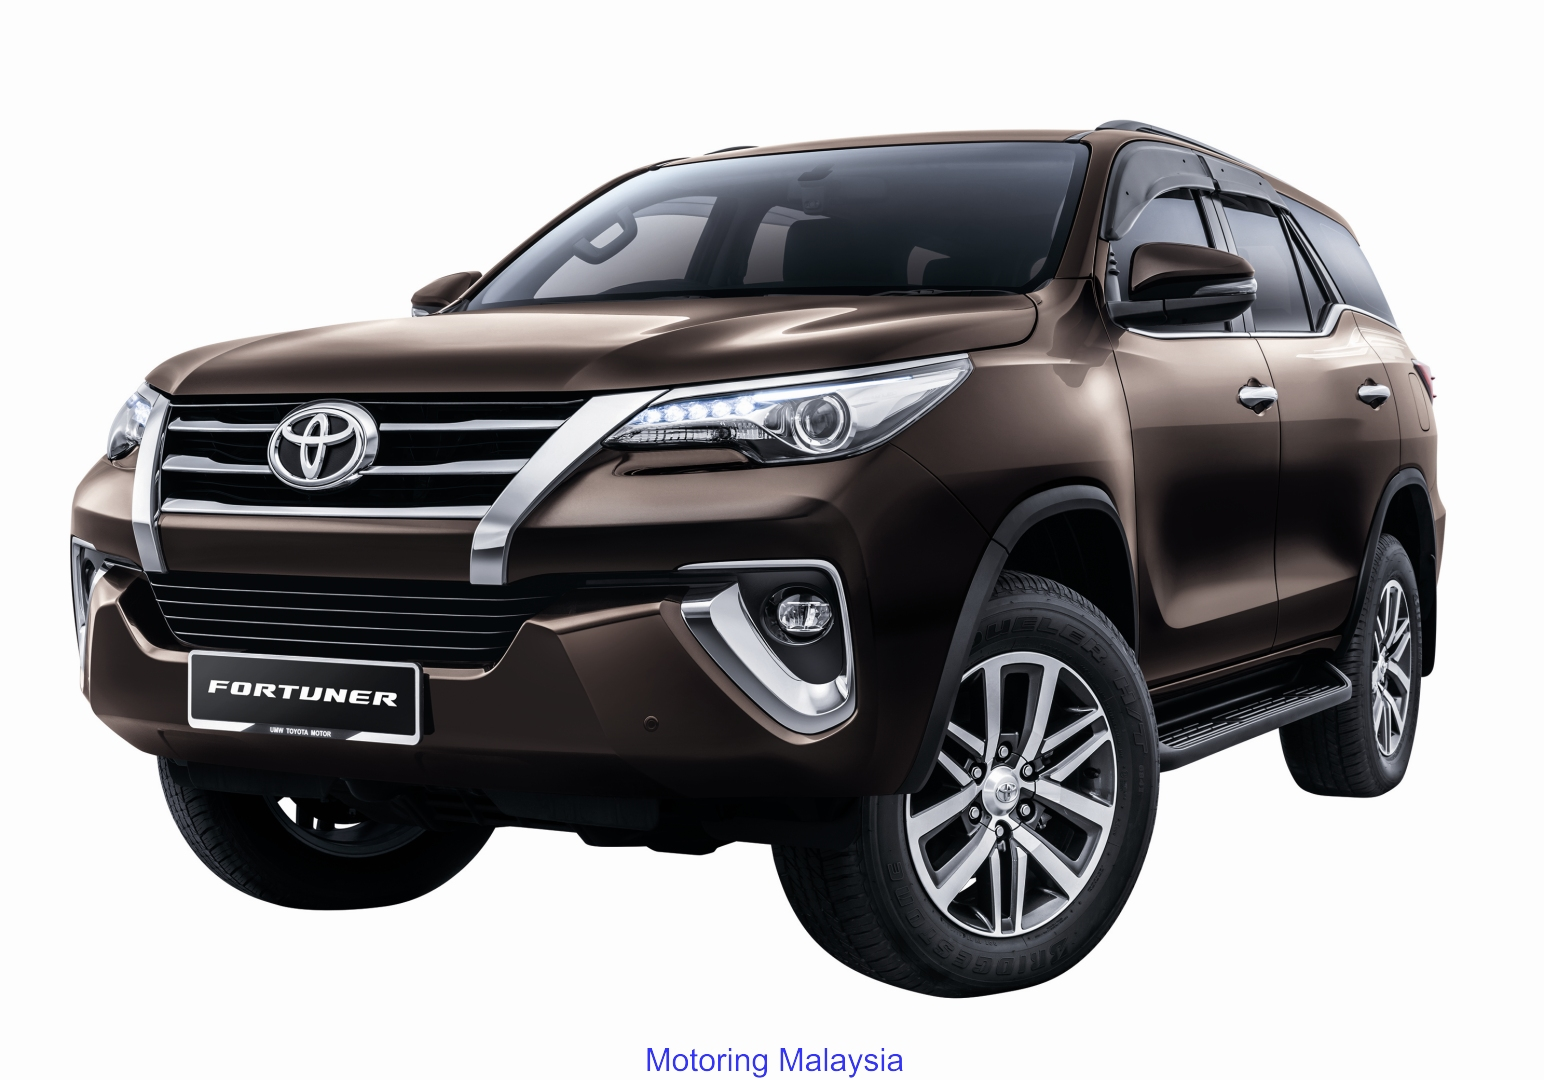 Motoring-Malaysia: The Toyota Fortuner and Innova Receives